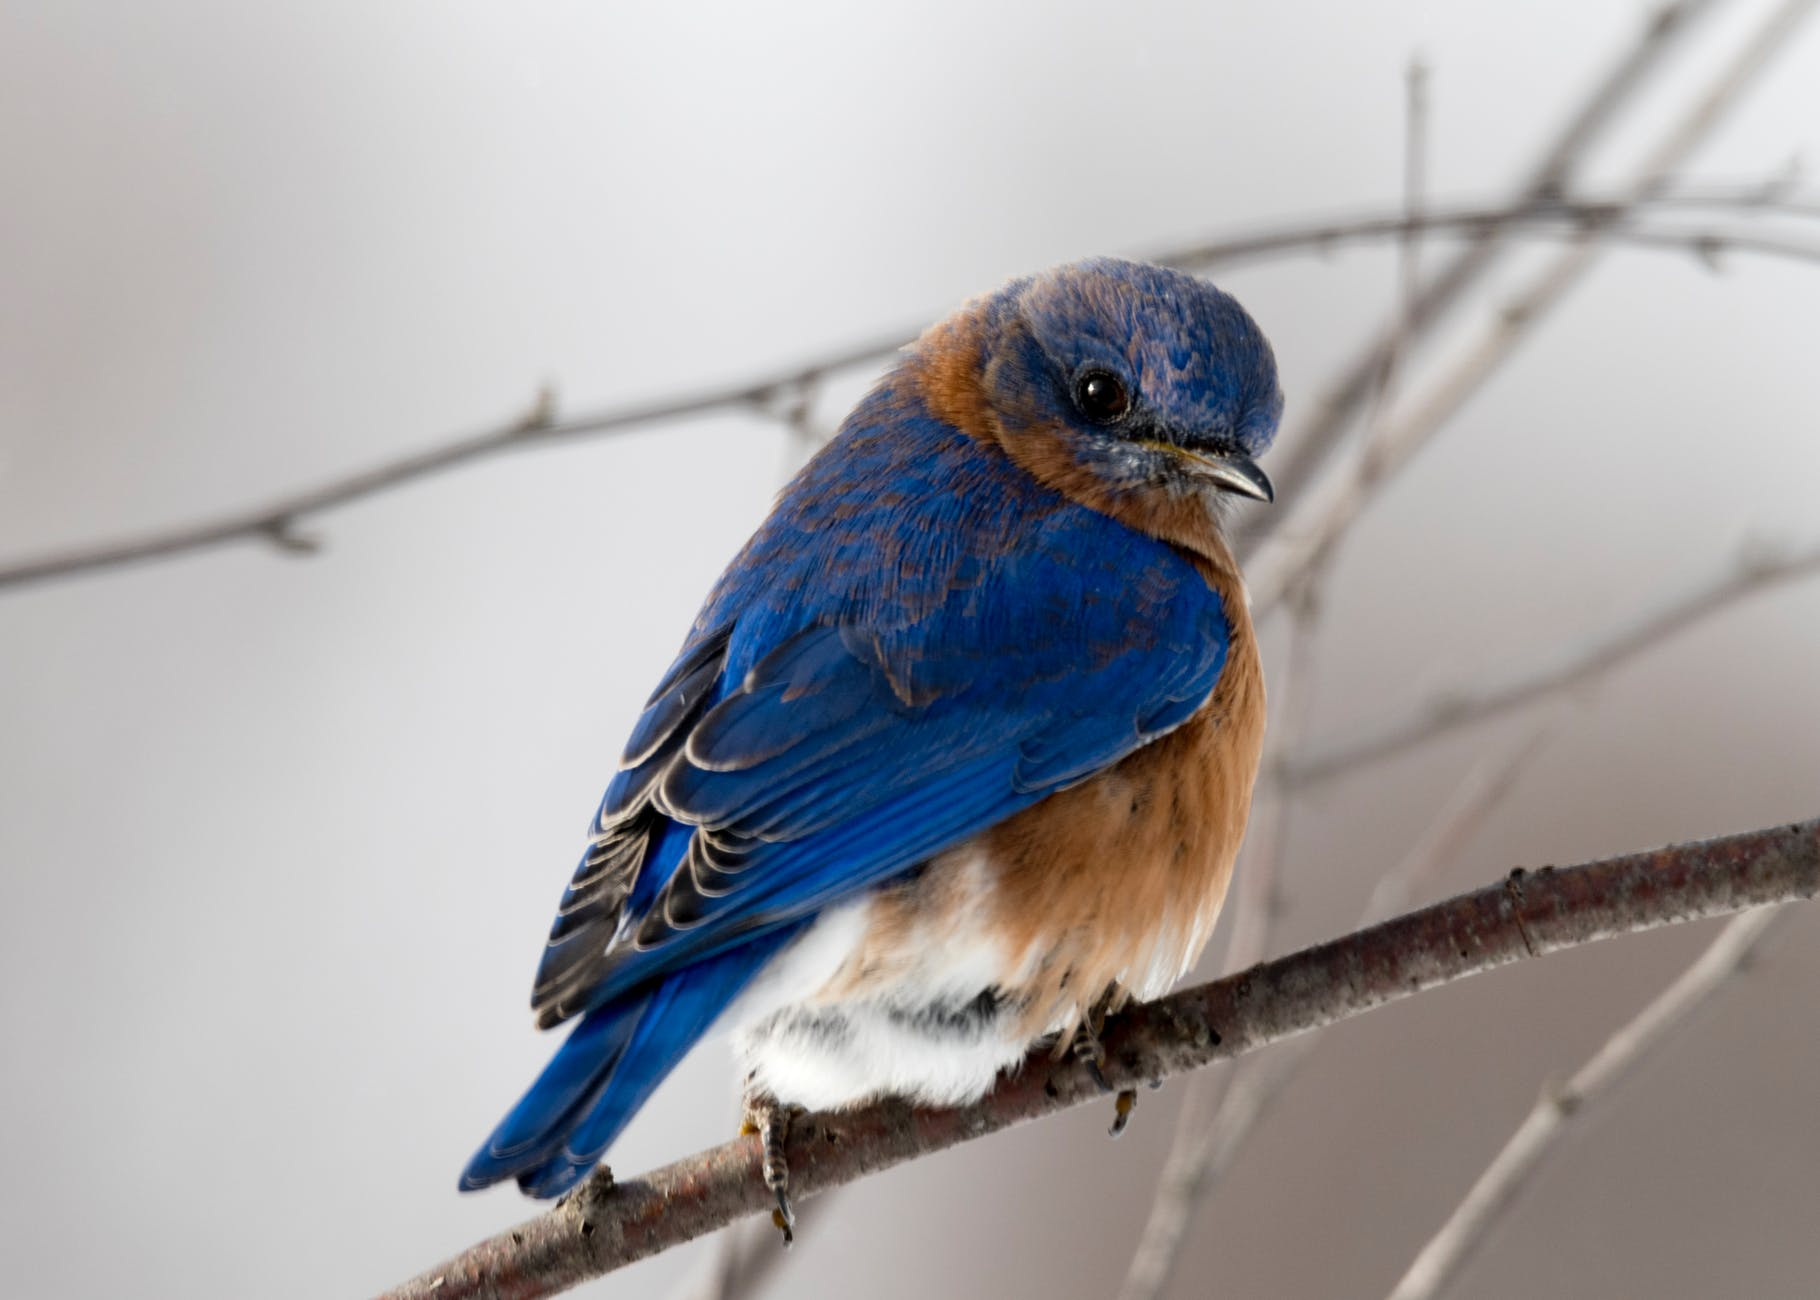 photography of small blue and brown bird